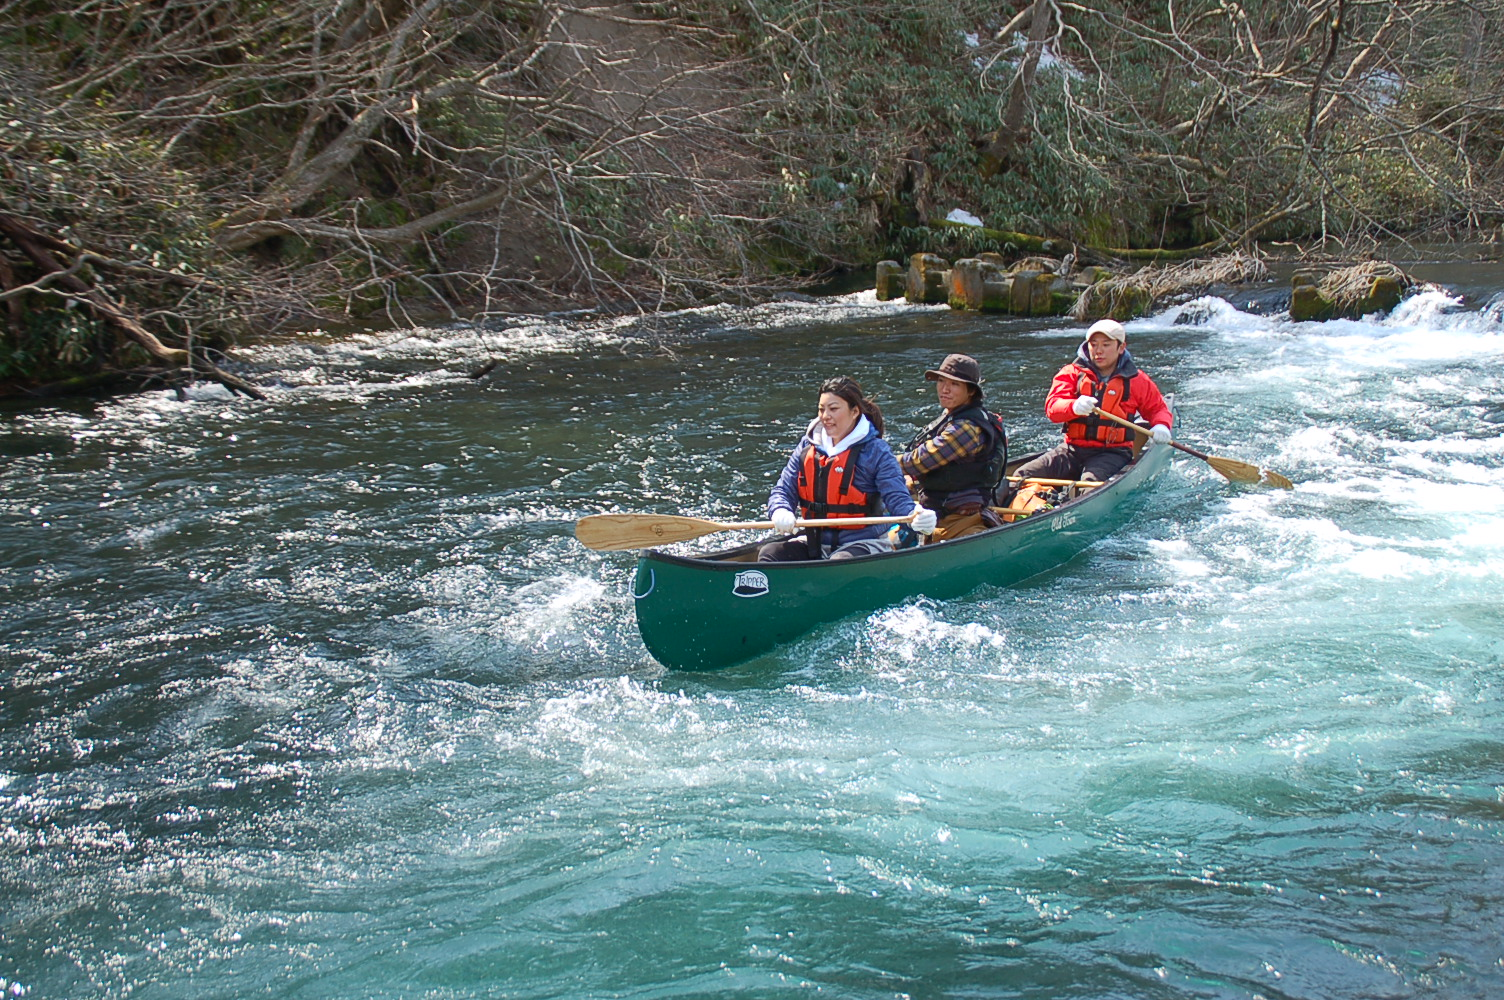 Full of Spring Cheer, Early Spring Canoeing in Chitose River